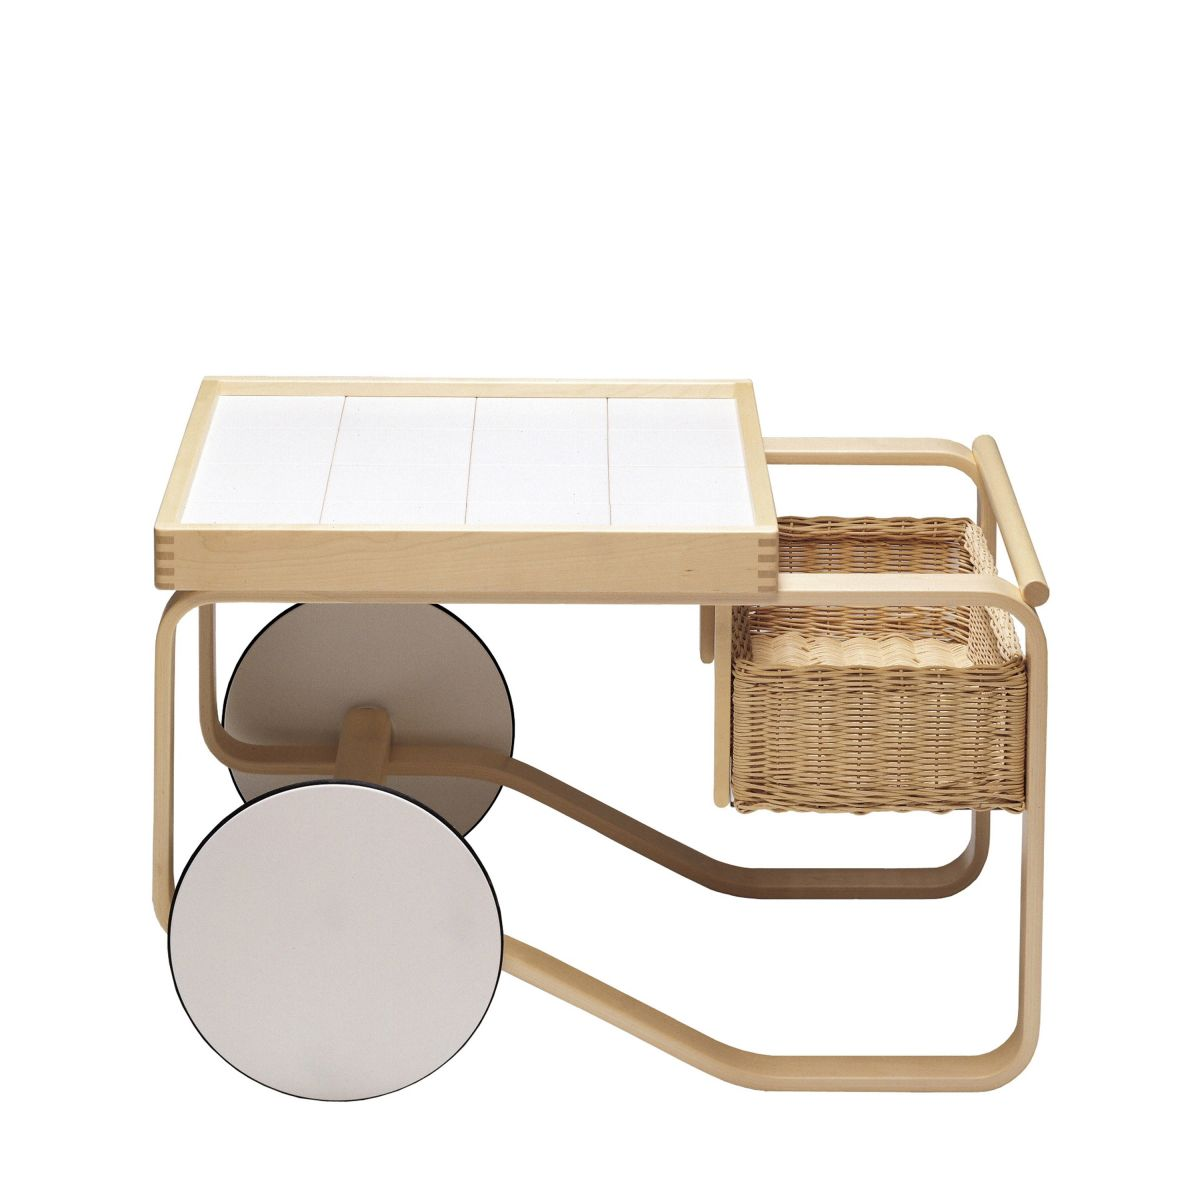 Tea-Trolley-900-White-Tiles_Web-1975961